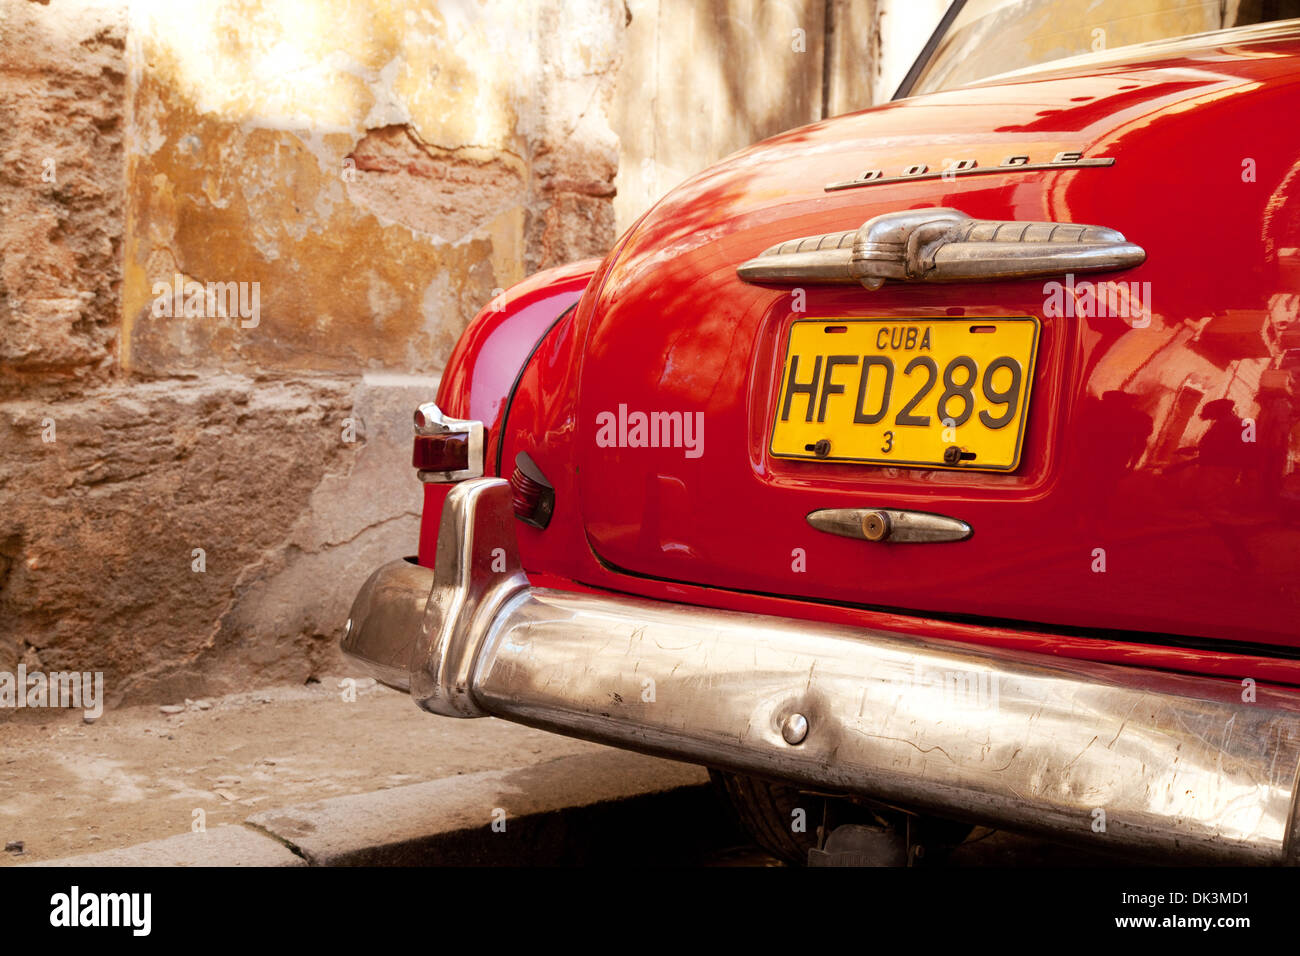 Close up of the rear of a red old American Dodge car, Havana Cuba, Caribbean - Stock Image